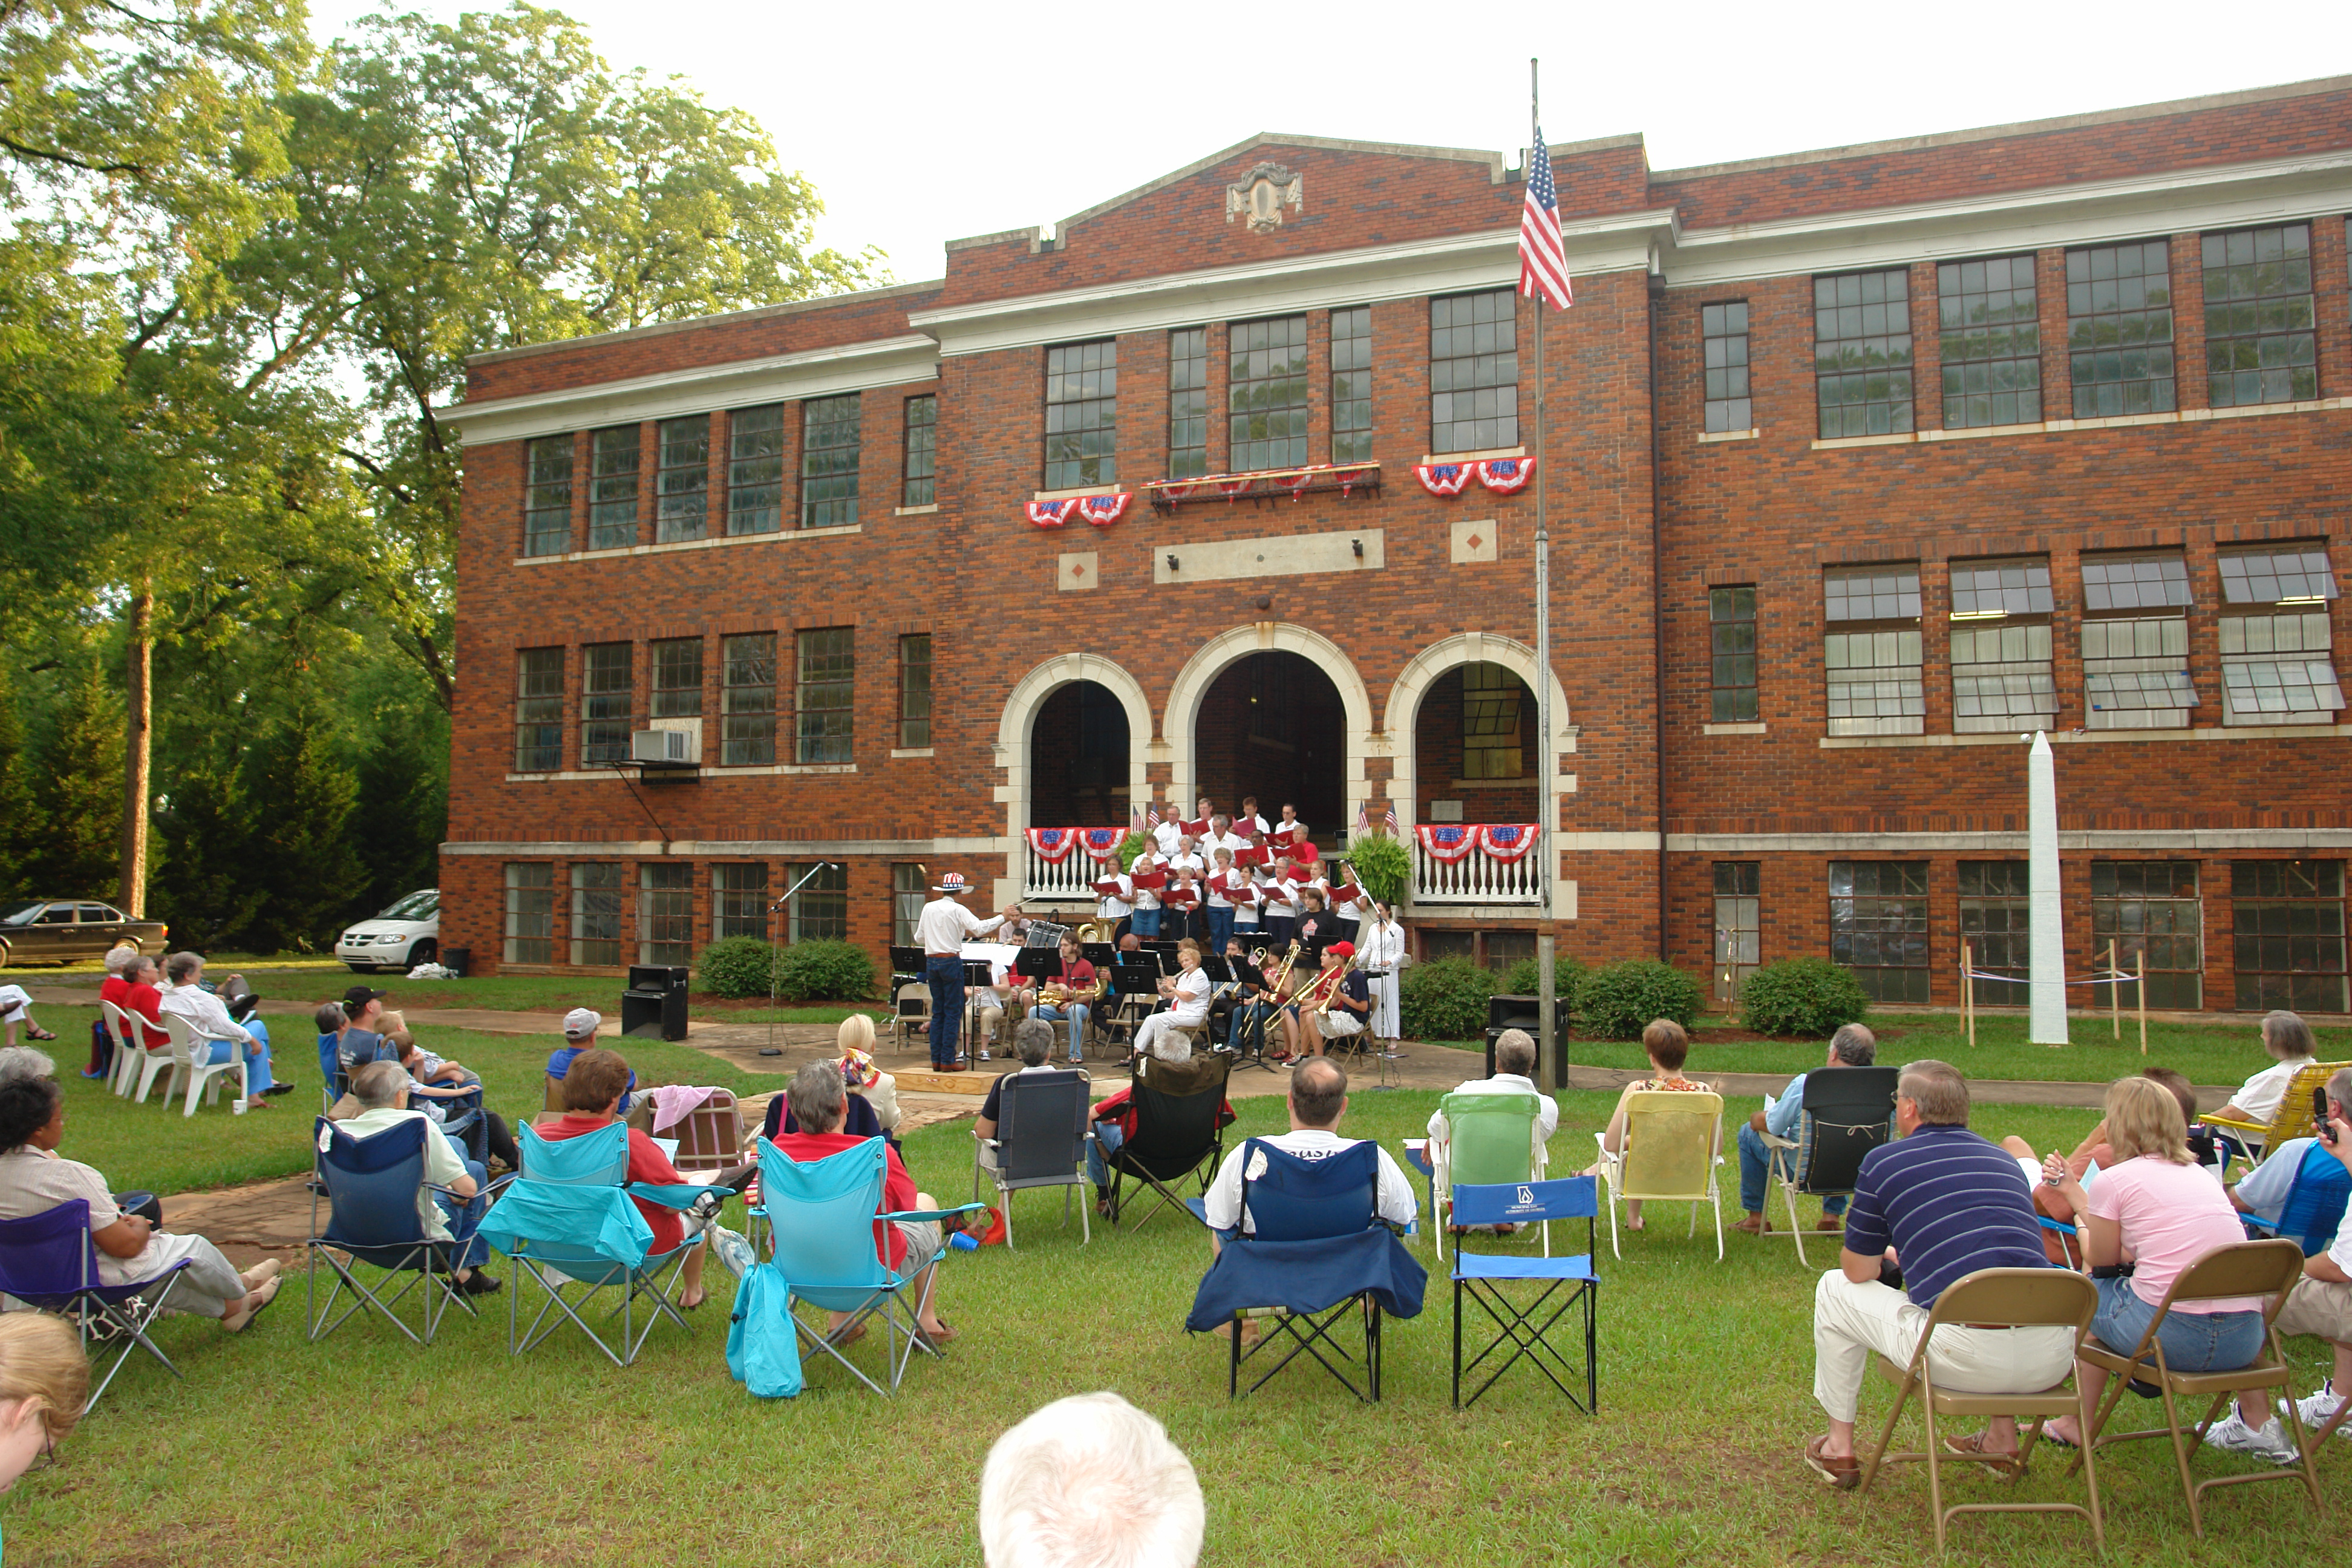 A Fourth of July celebration in front of the restored High School in Monticello, Georgia.